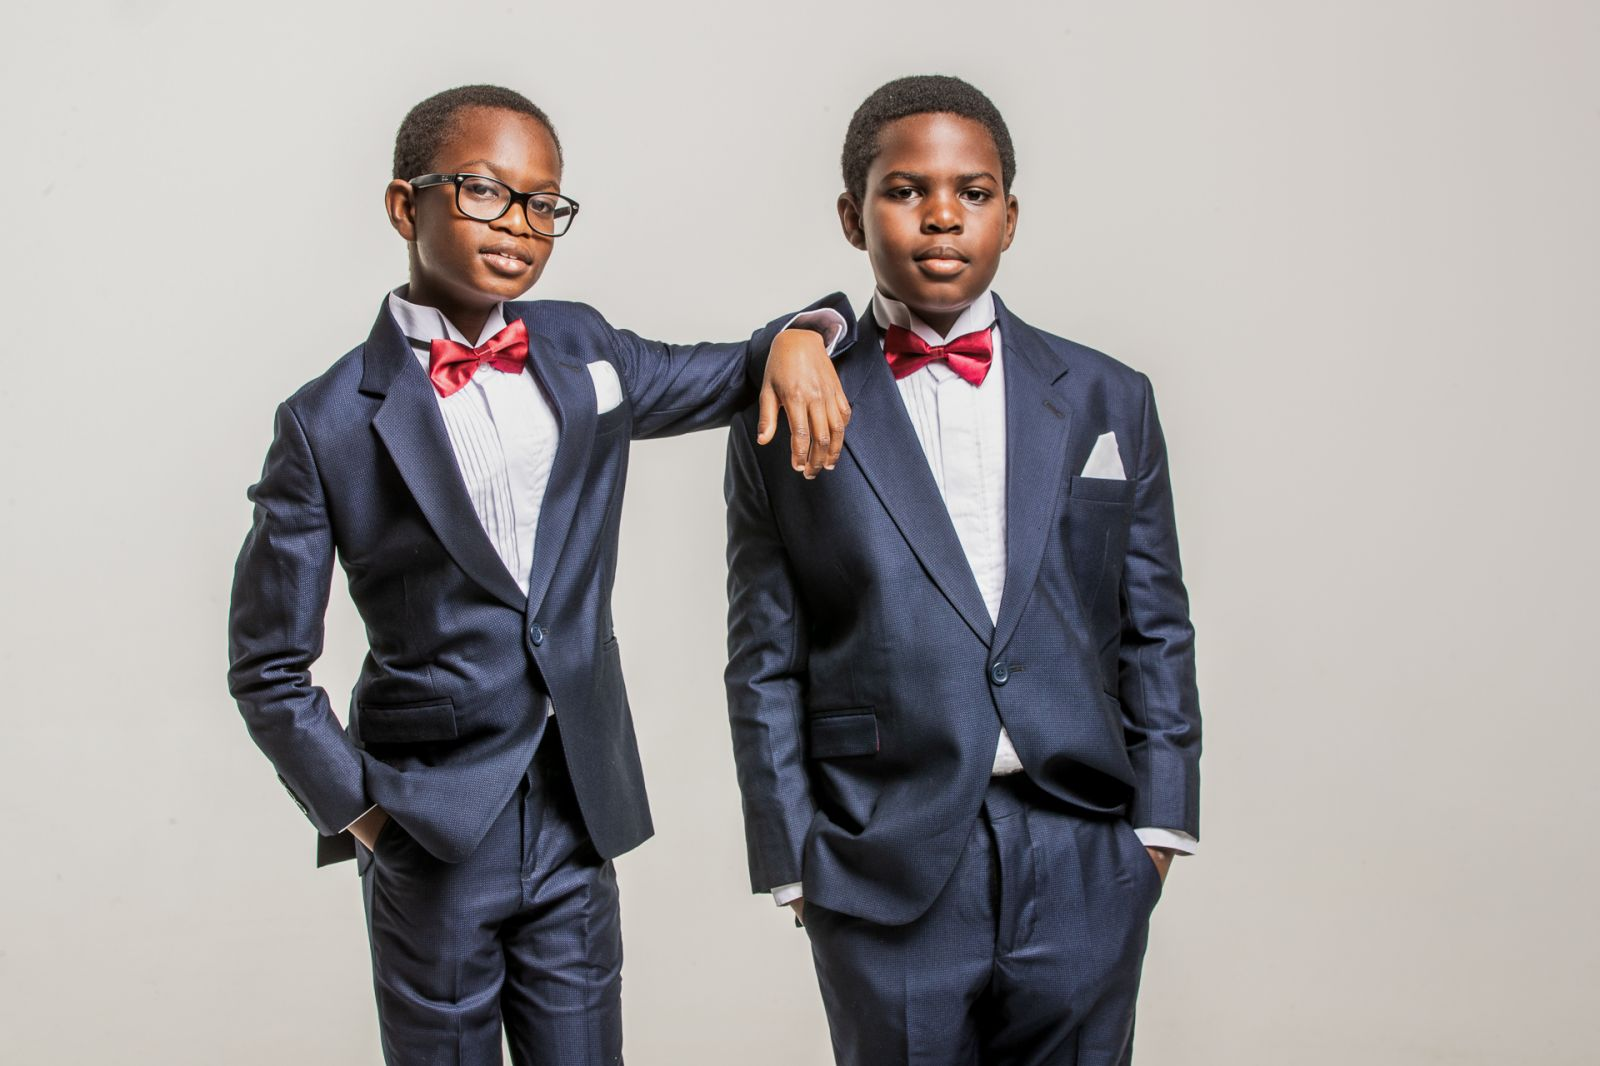 Portrait of 2 young brothers wearing suits and bow ties